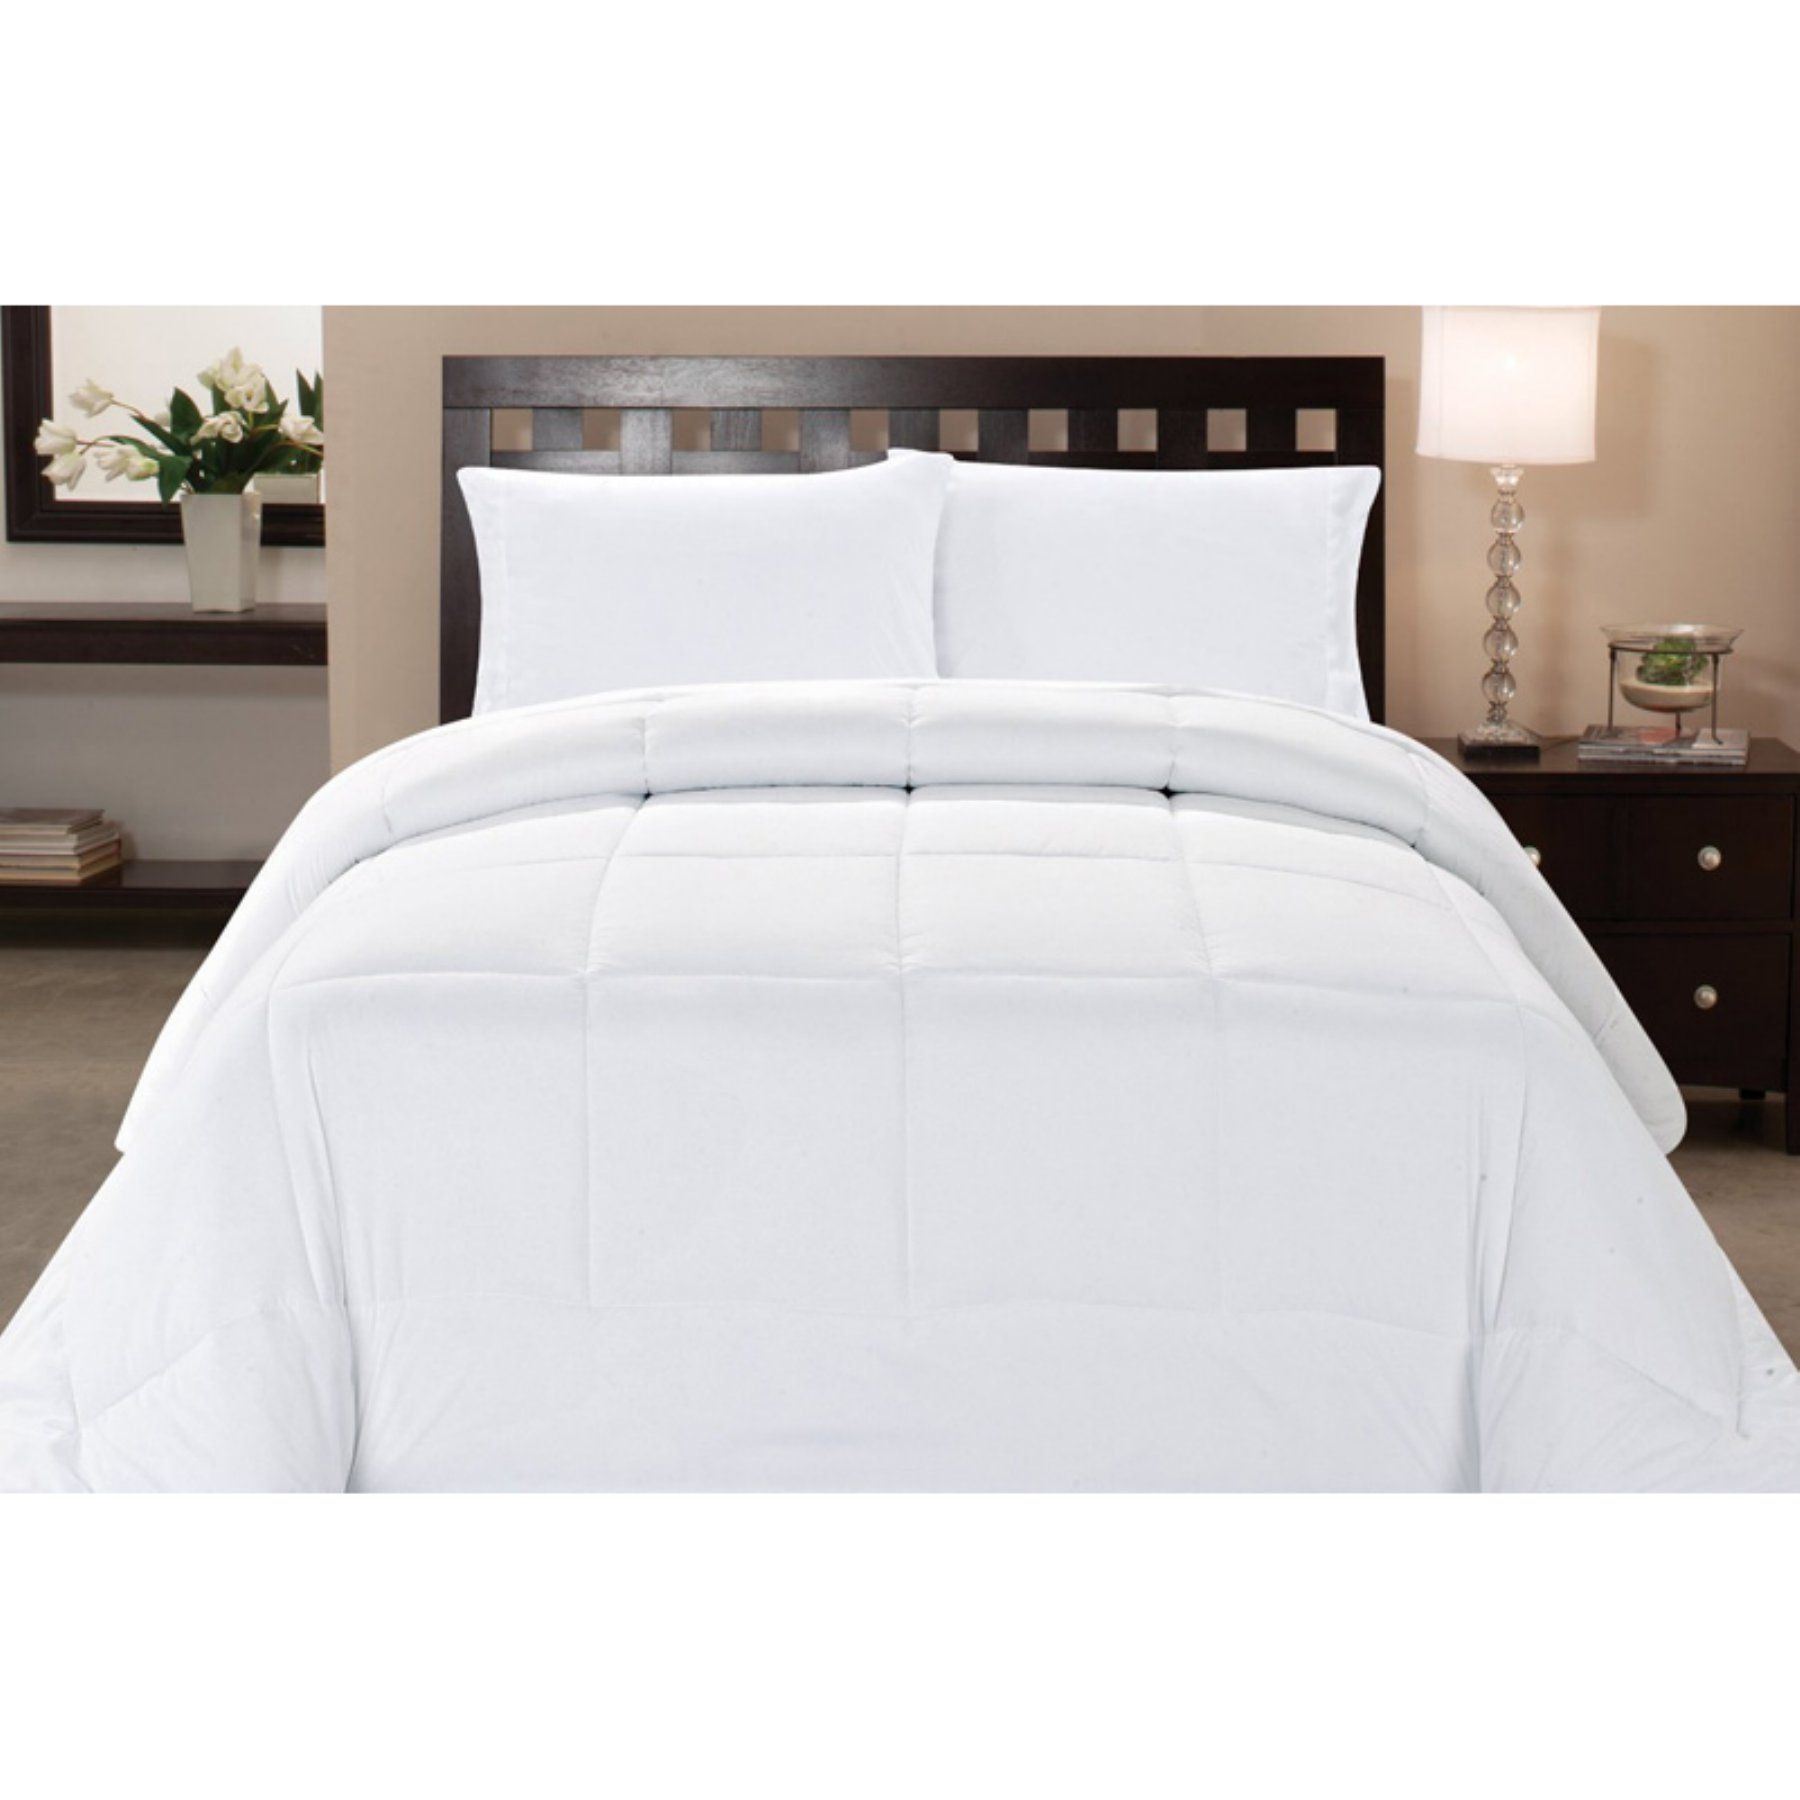 Box Stitch Polyester Down Alternative Comforter By Sweet Home